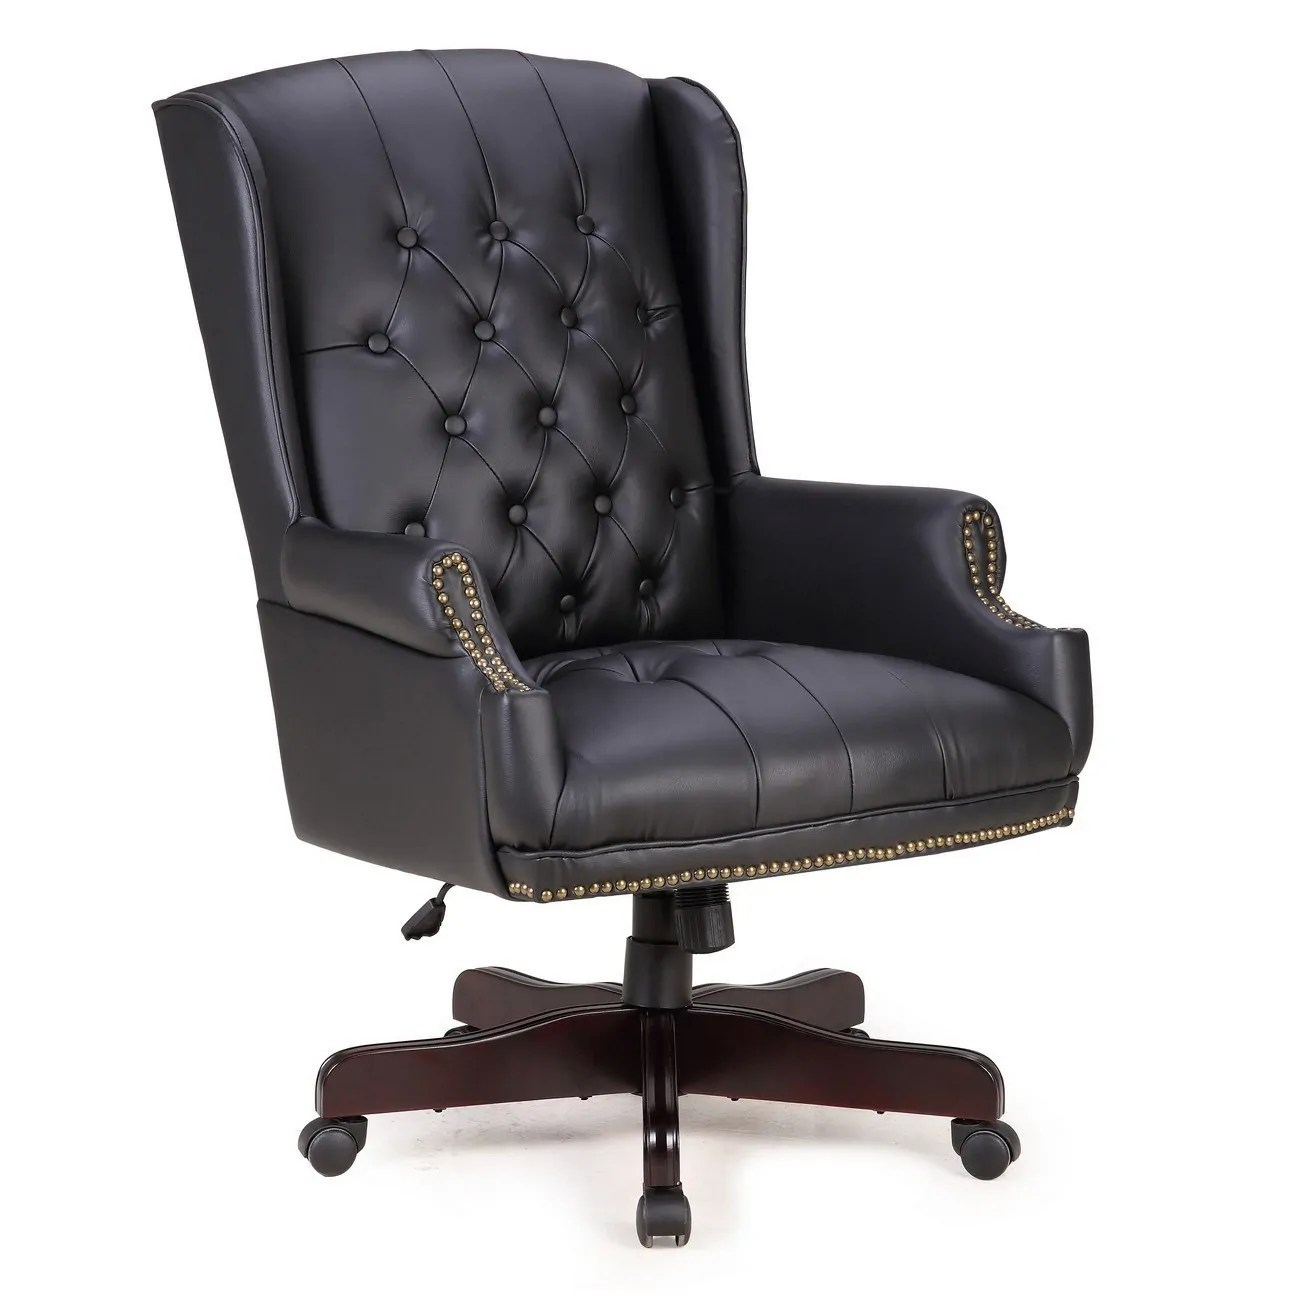 Comfy Office Chair 12 Most Comfortable Office Chairs Under 200 Happily